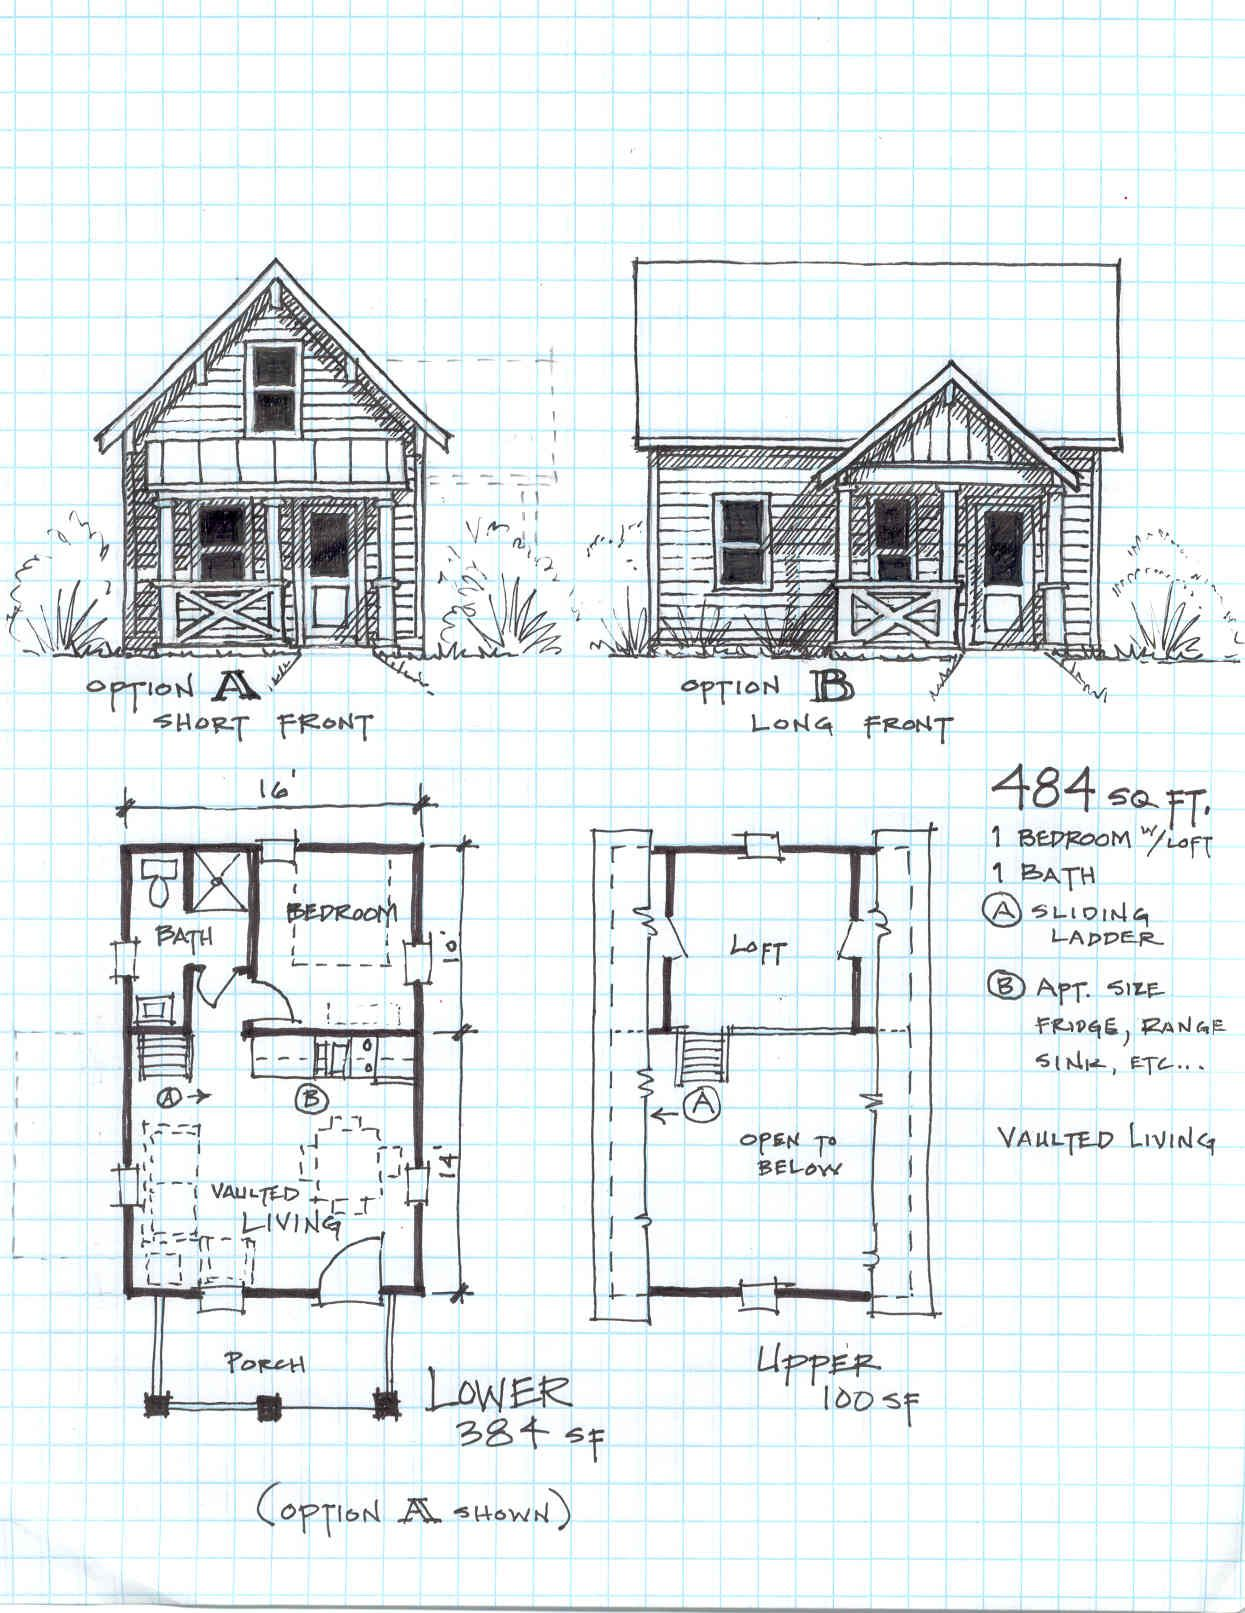 Fantastic 17 Best Images About 10 12 Ft Wide Tiny Cabins On Pinterest Largest Home Design Picture Inspirations Pitcheantrous